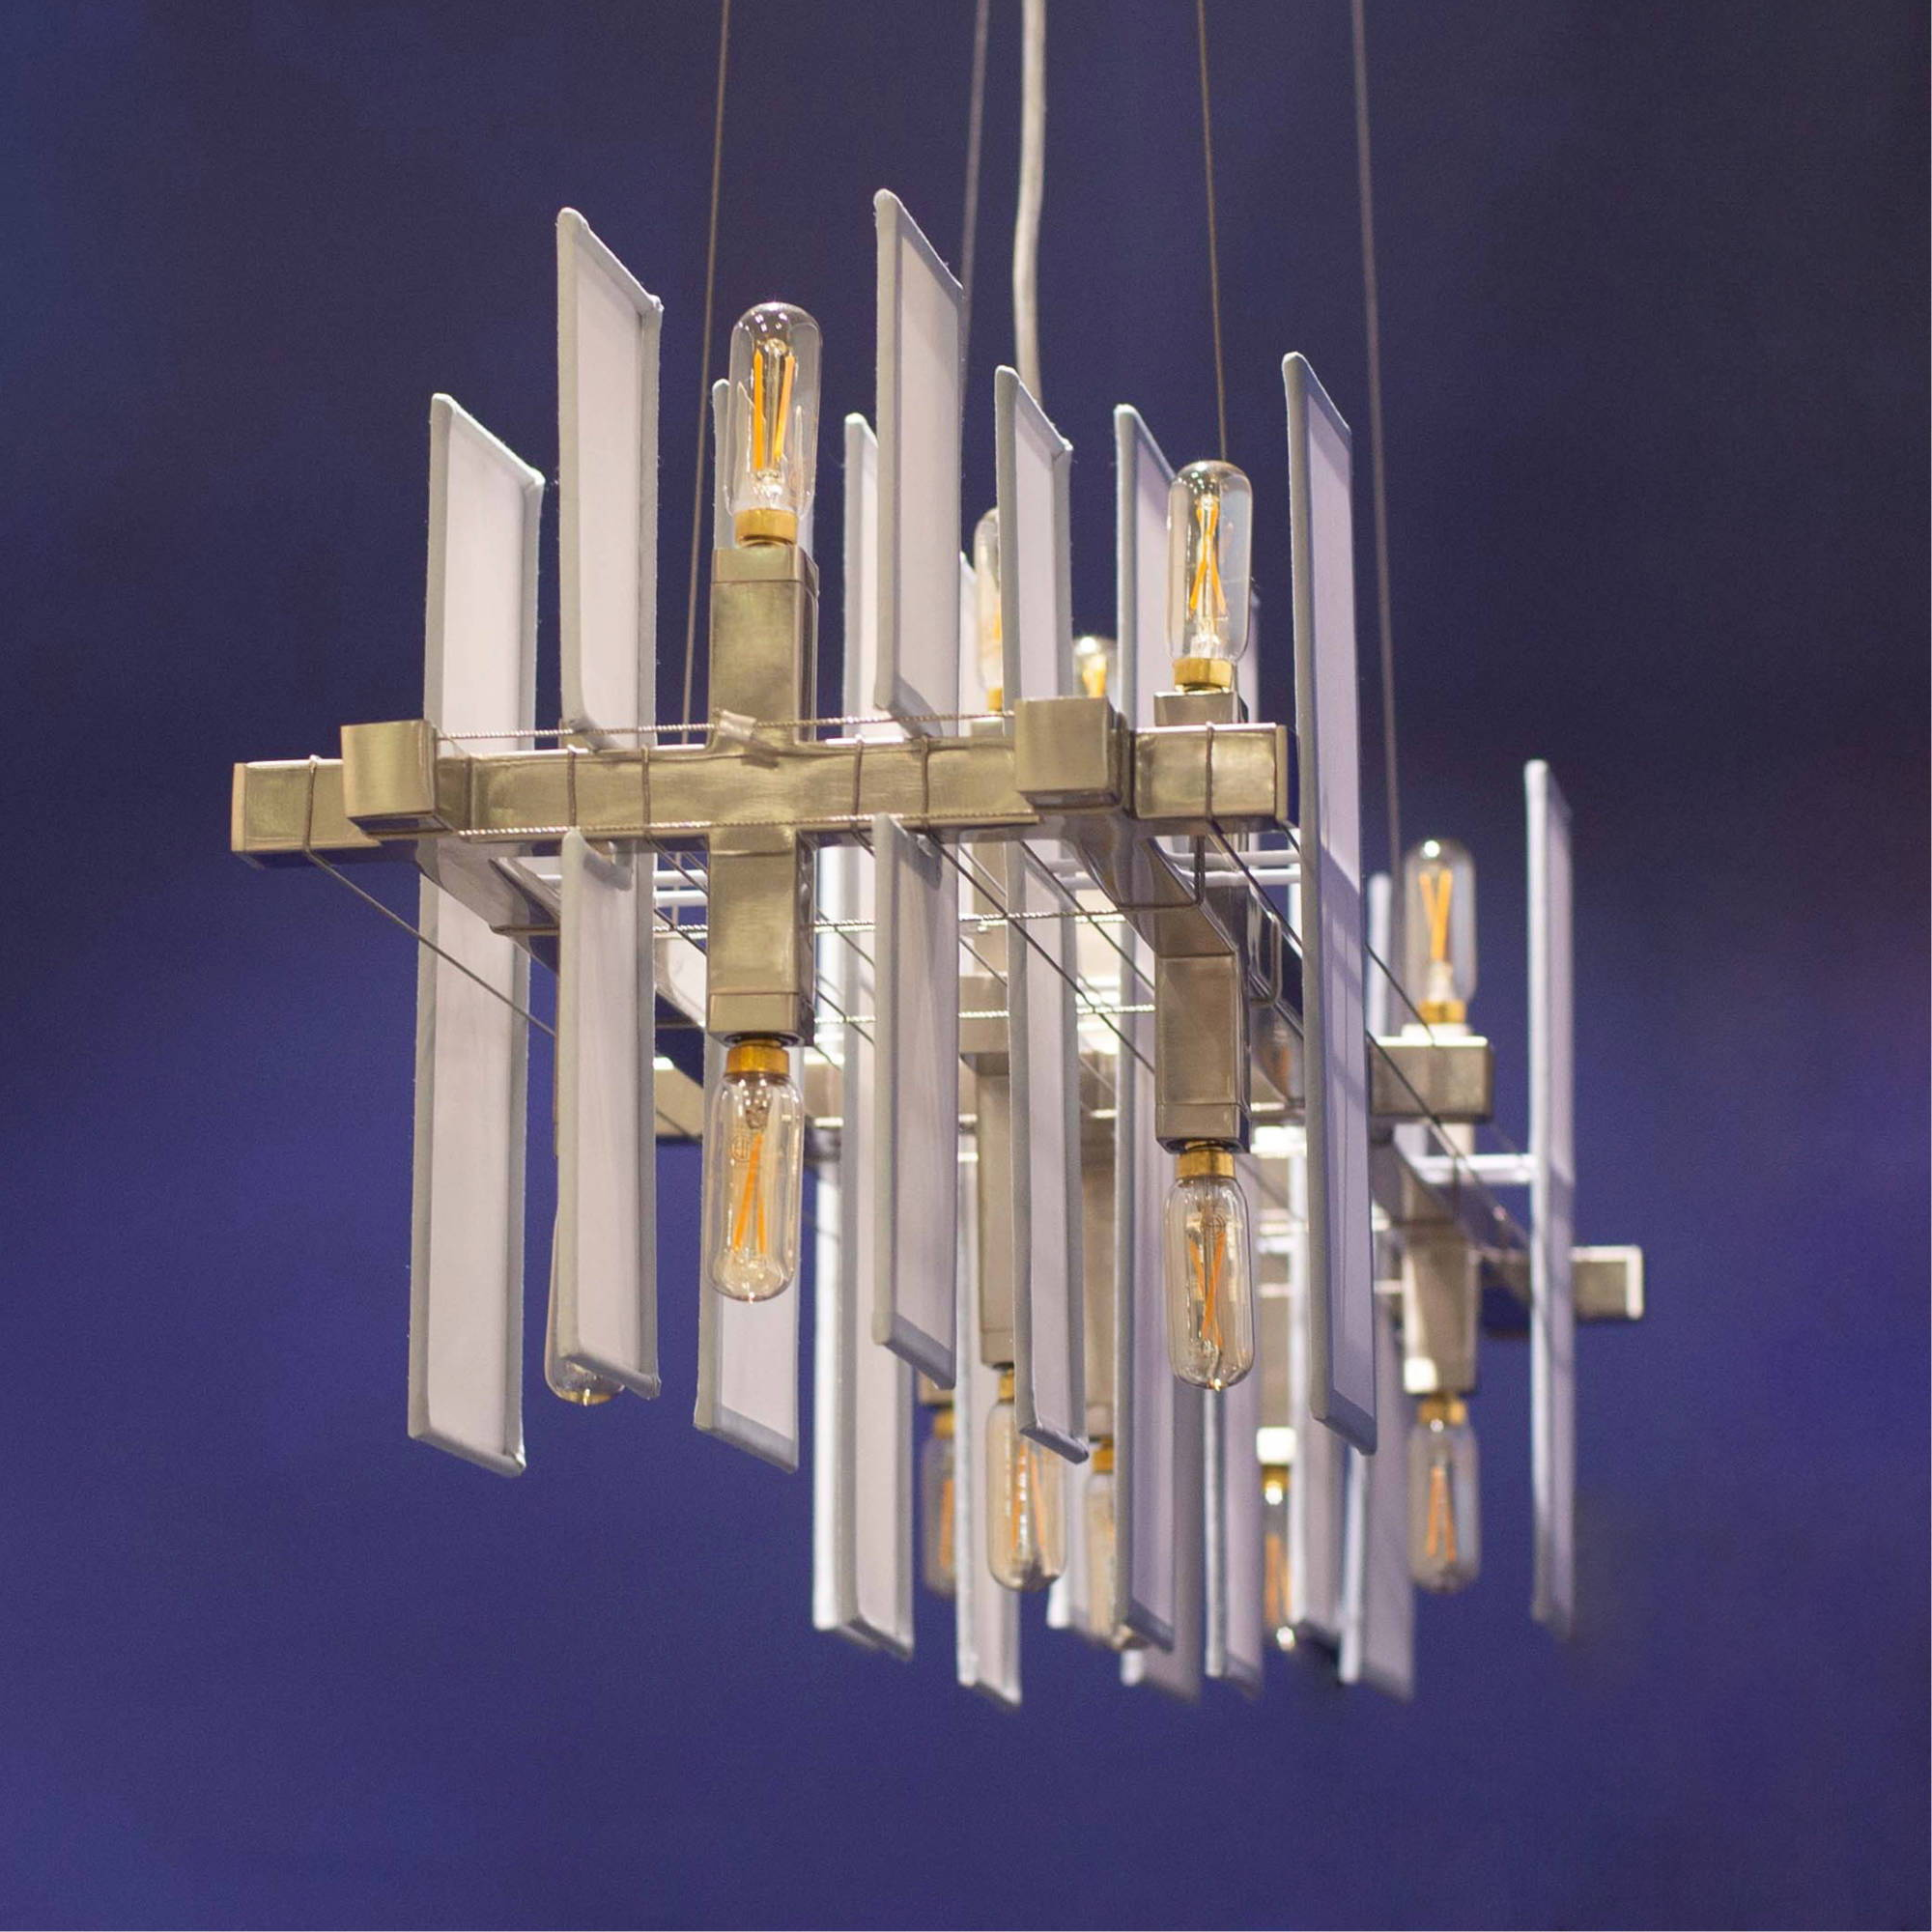 Matrix Modular Panel Suspension can change its look quickly